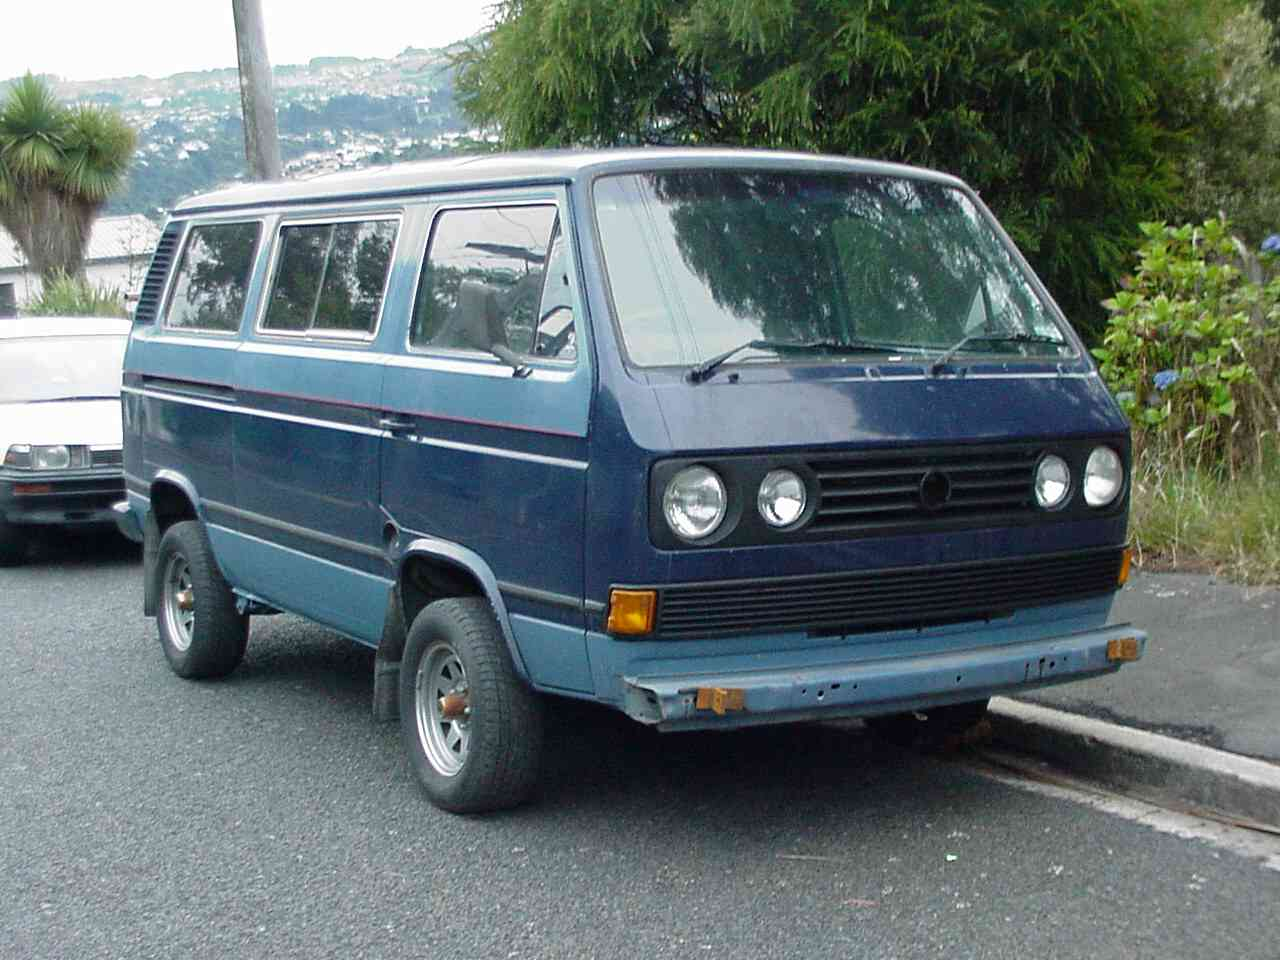 1984 Caravelle minus drivetrain awaiting conversion